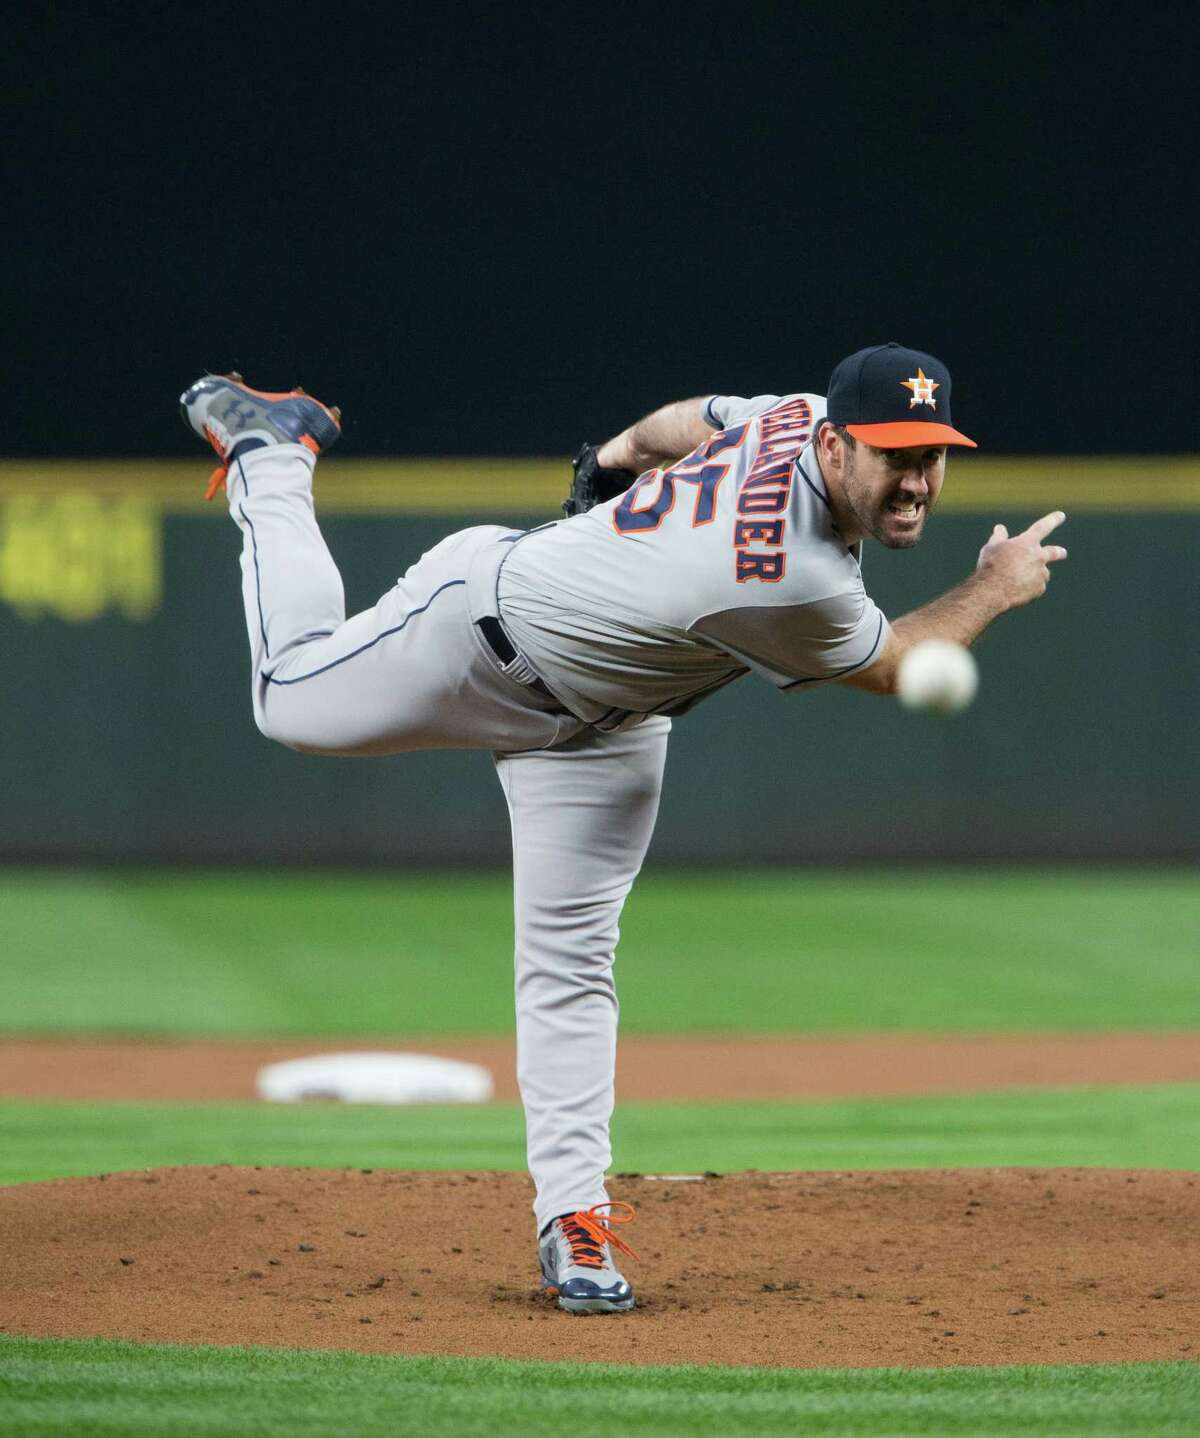 The lure of pitching for a contender swayed Justin Verlander to accept a trade from the Tigers to the Astros. He makes his first home start with his new club today.